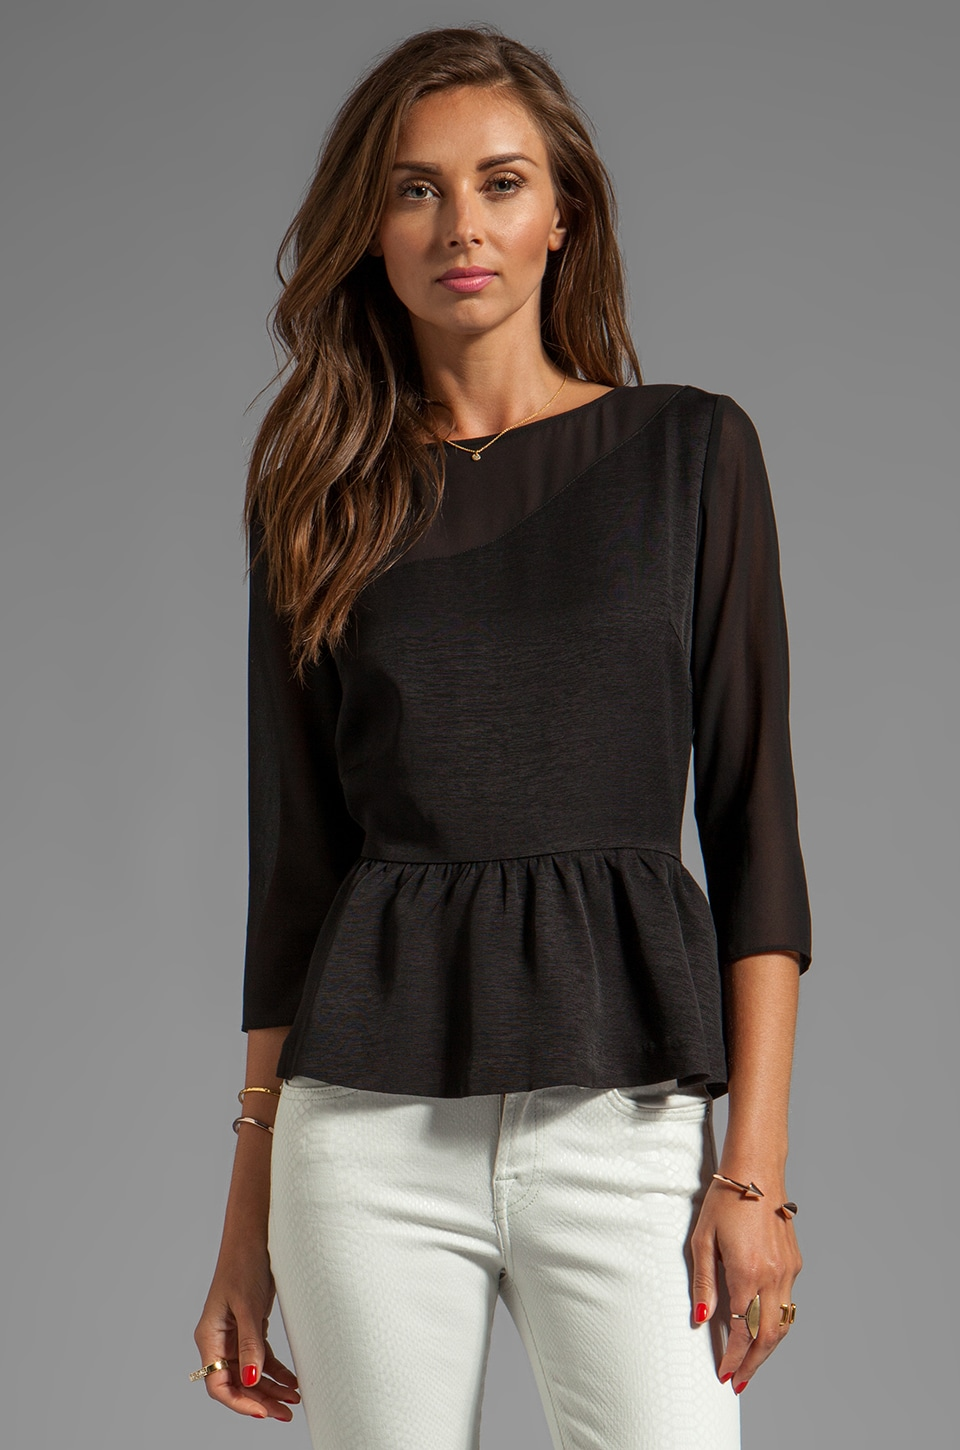 Dolce Vita Sisley Viscose Faille Top in Black